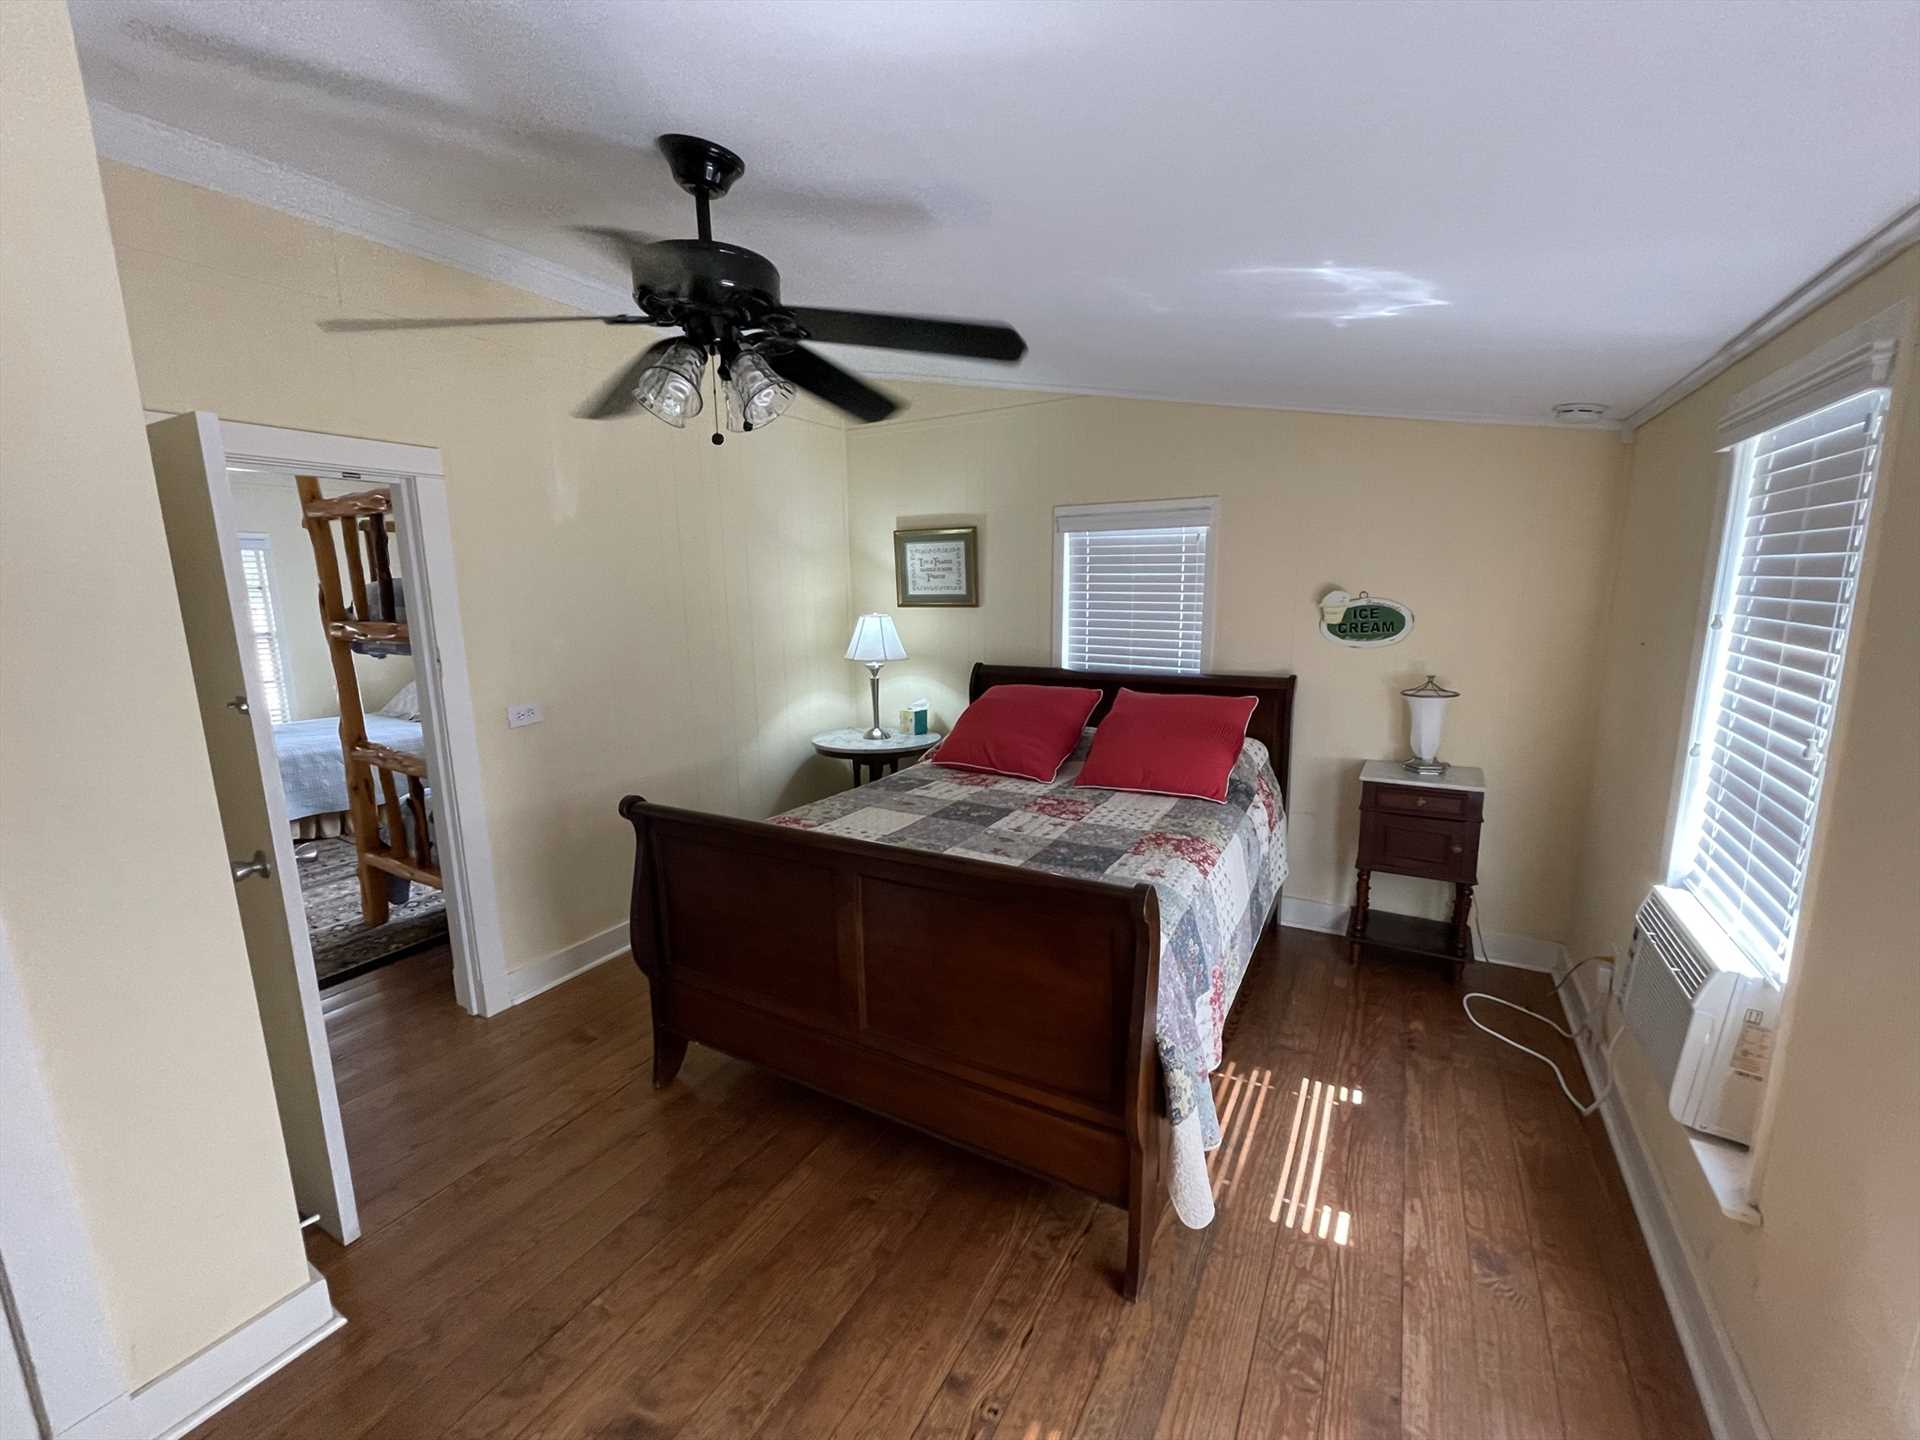 Natural light awakens you gently in the master bedroom, with a comfy queen-sized bed for two guests.